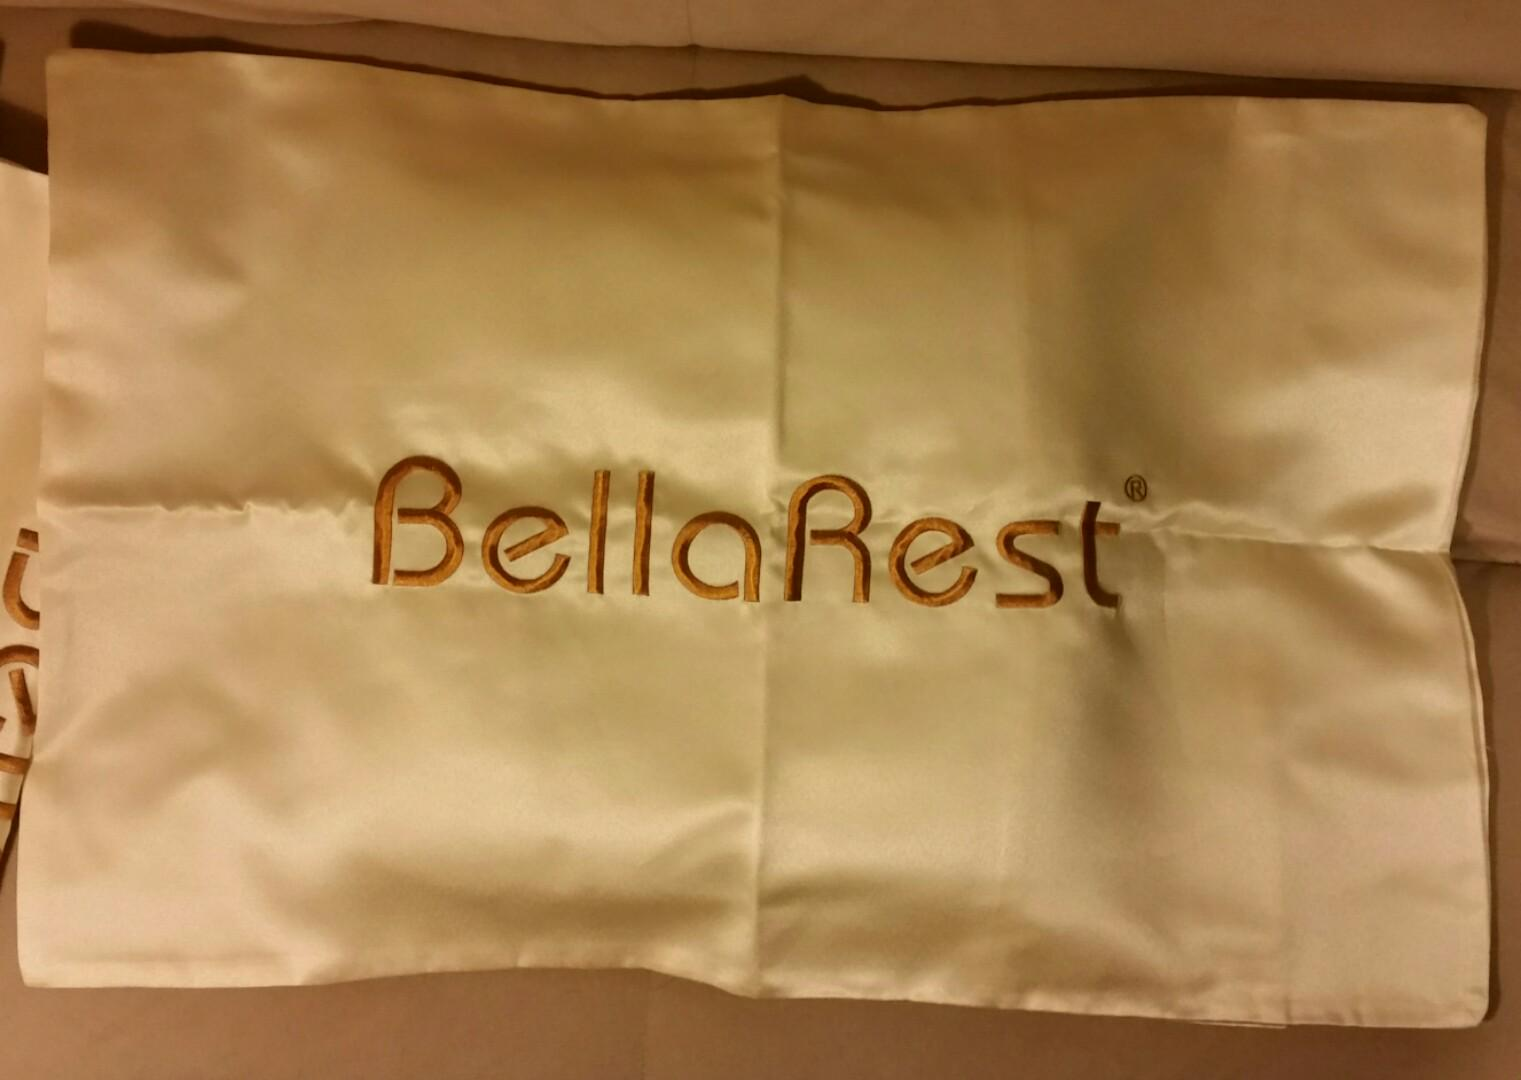 New 5 Queen Pillow Cases 4 Long Cushion Cases Golden Thick Silky Soft!